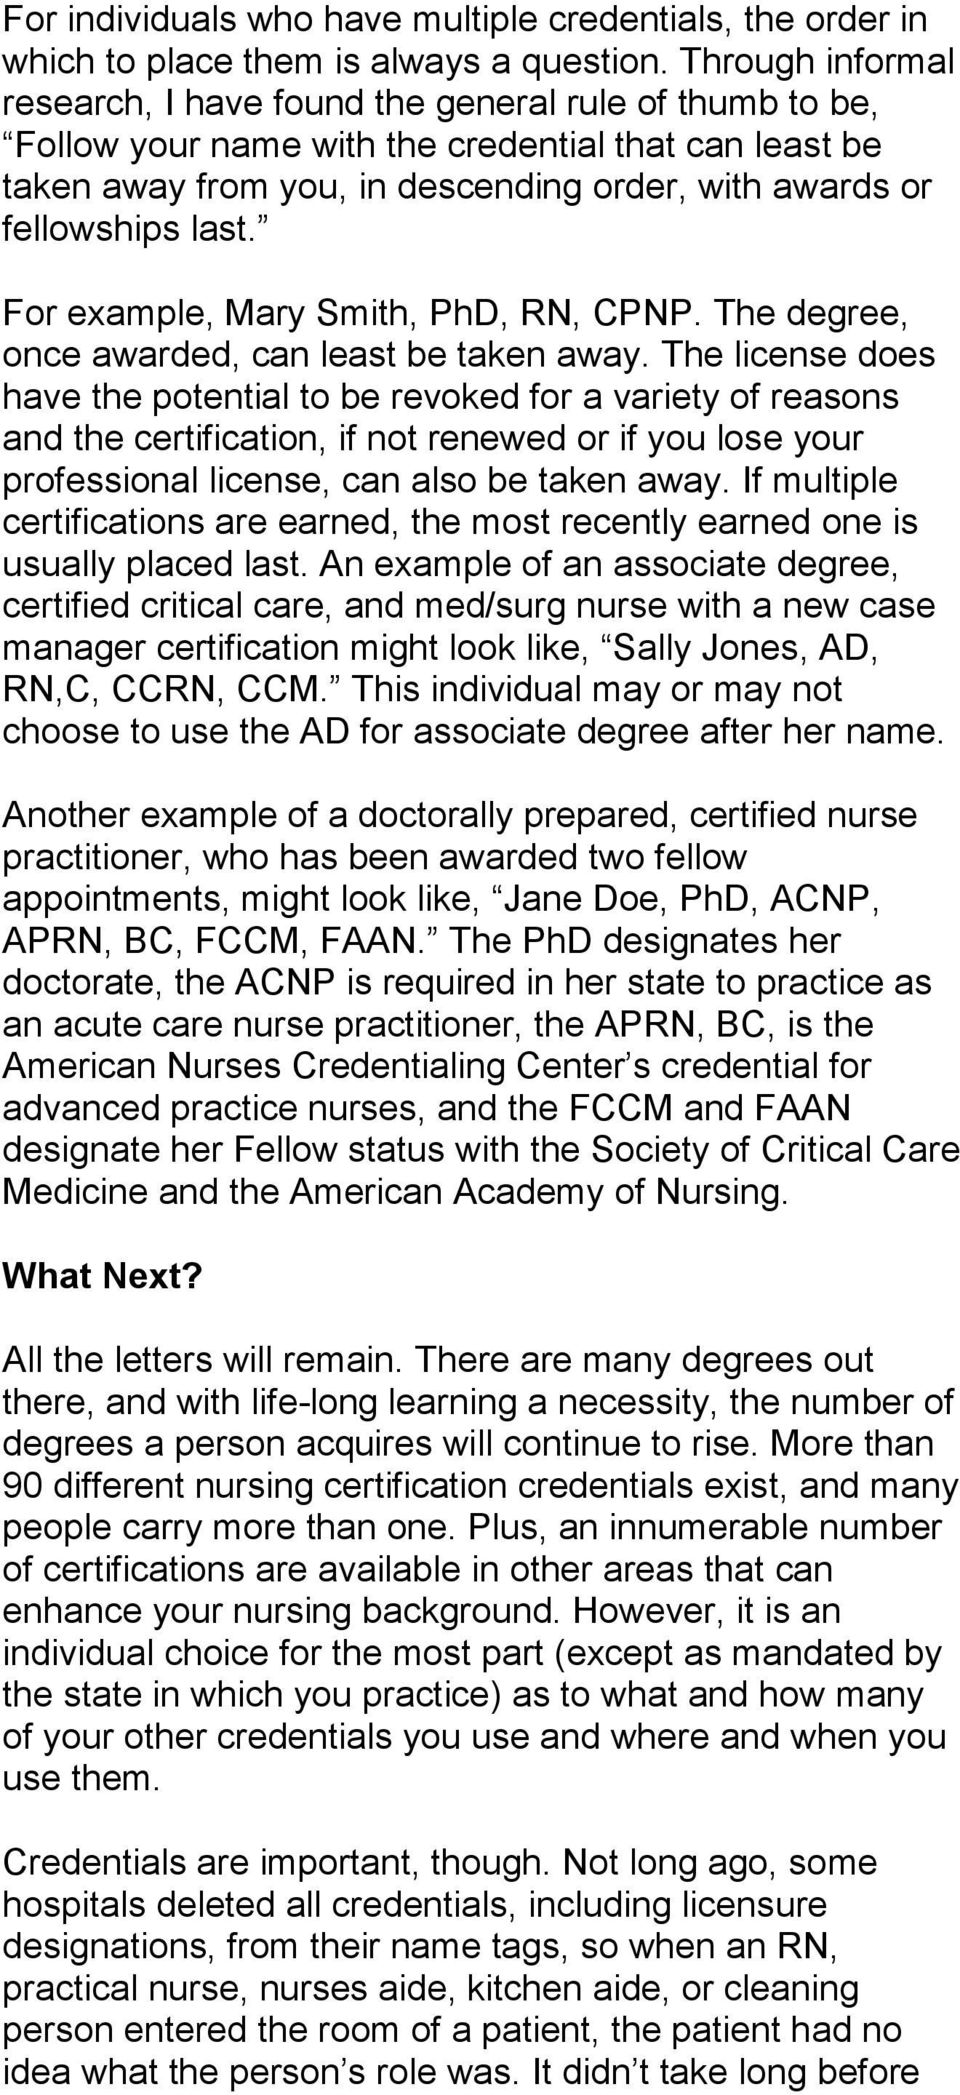 last. For example, Mary Smith, PhD, RN, CPNP. The degree, once awarded, can least be taken away.